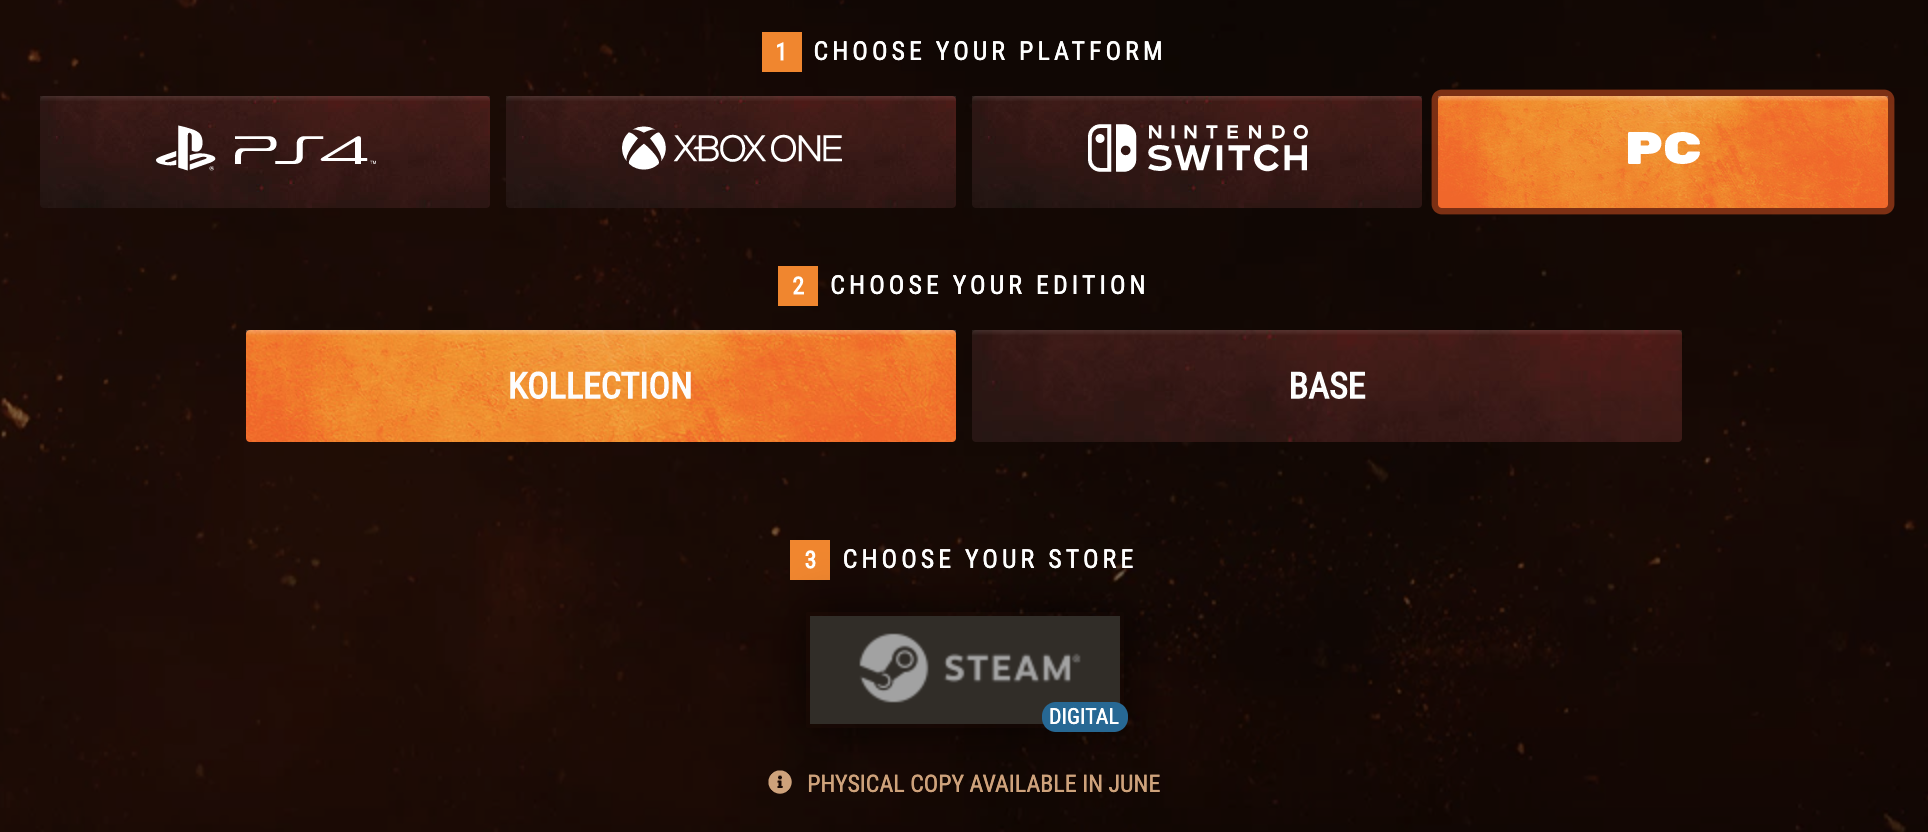 Example storefront selection flow for Mortal Kombat